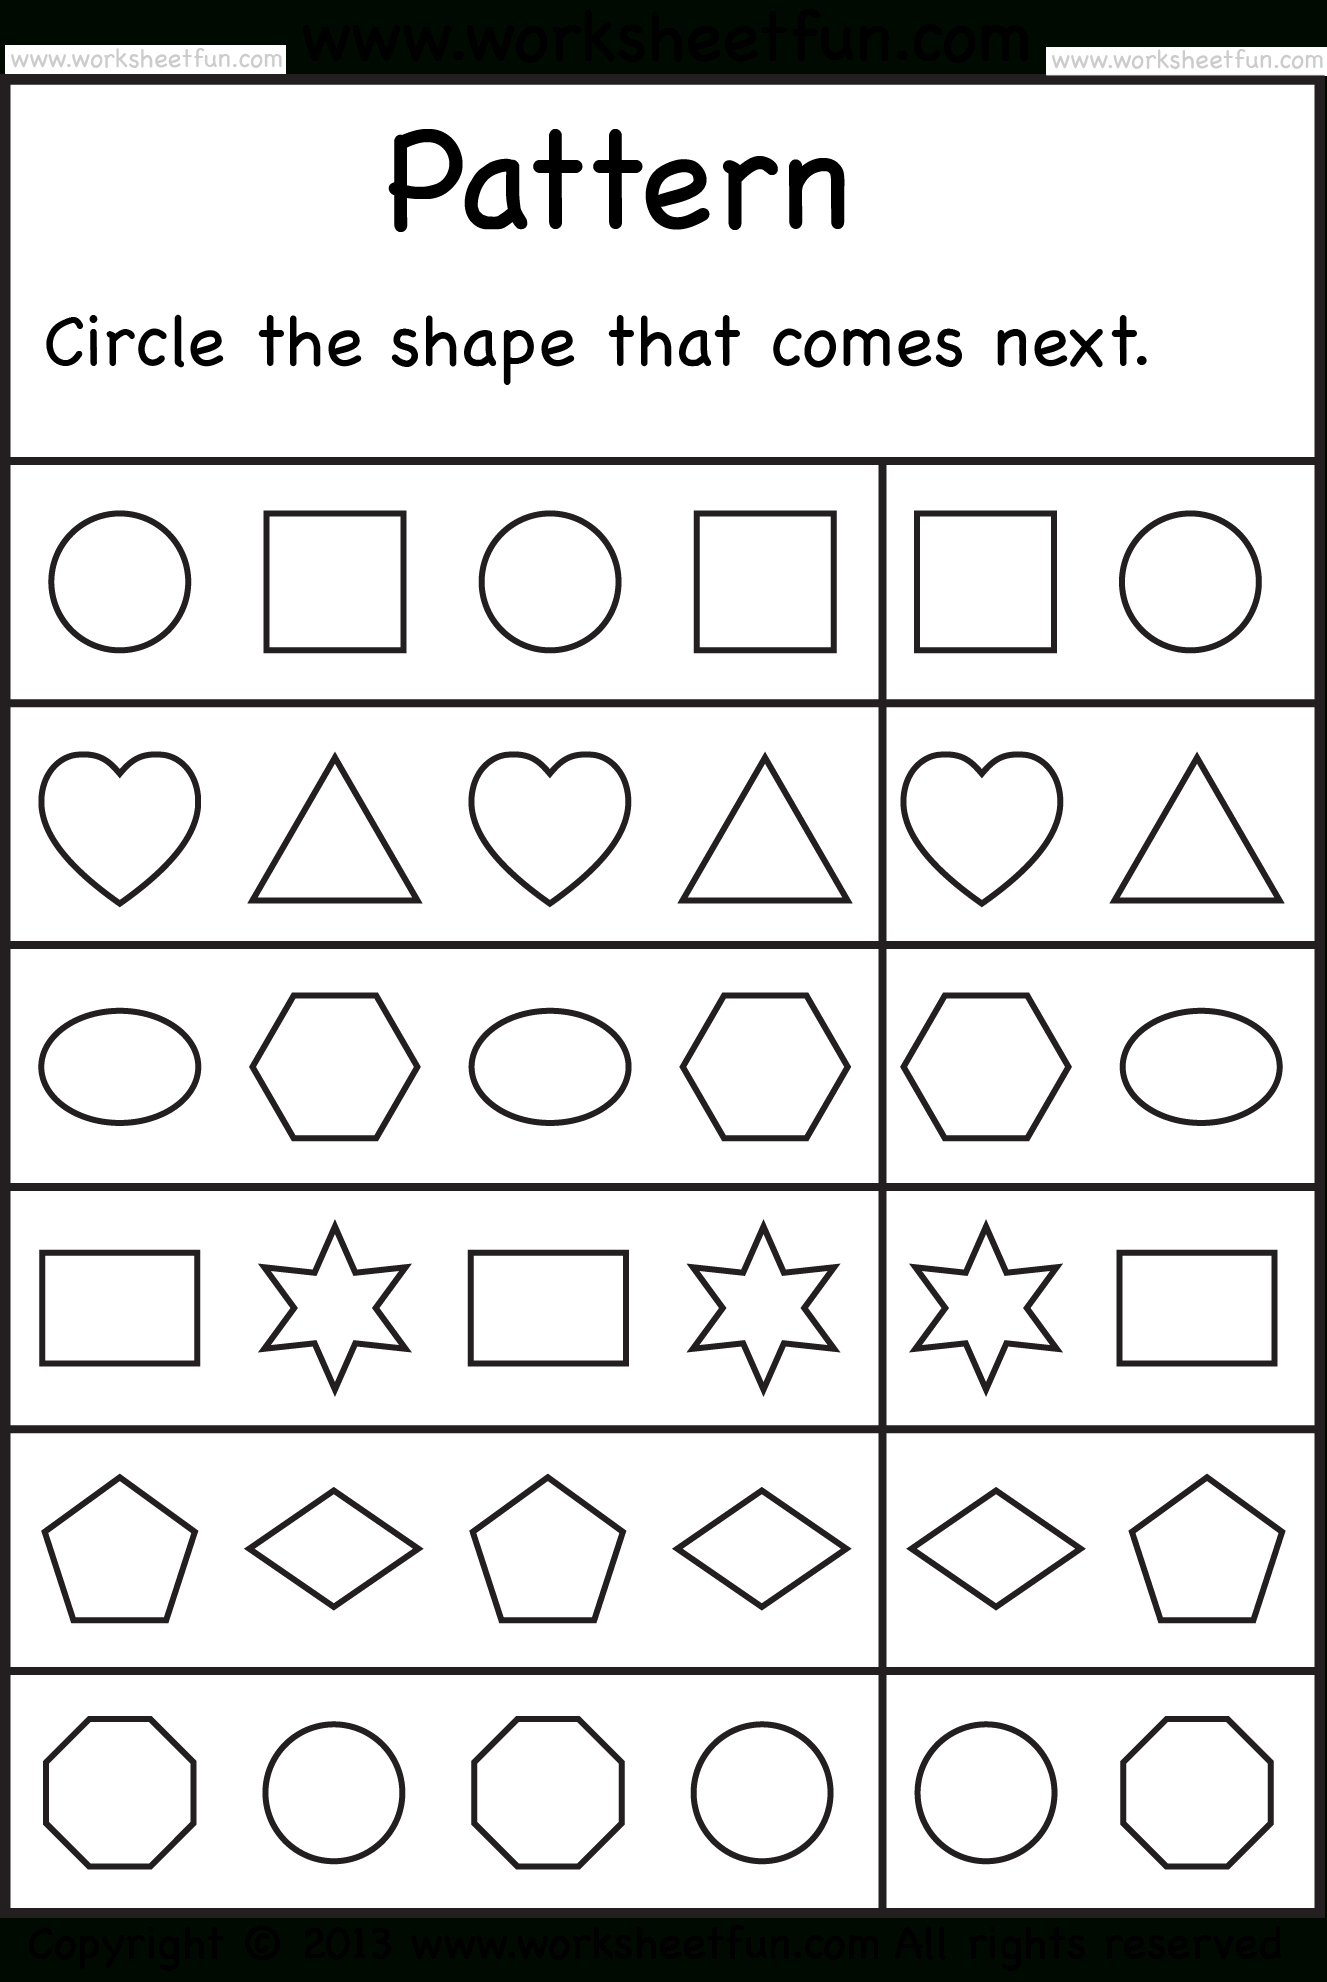 Free Printable Worksheets – Worksheetfun / Free Printable | Free Printable Worksheets For Children